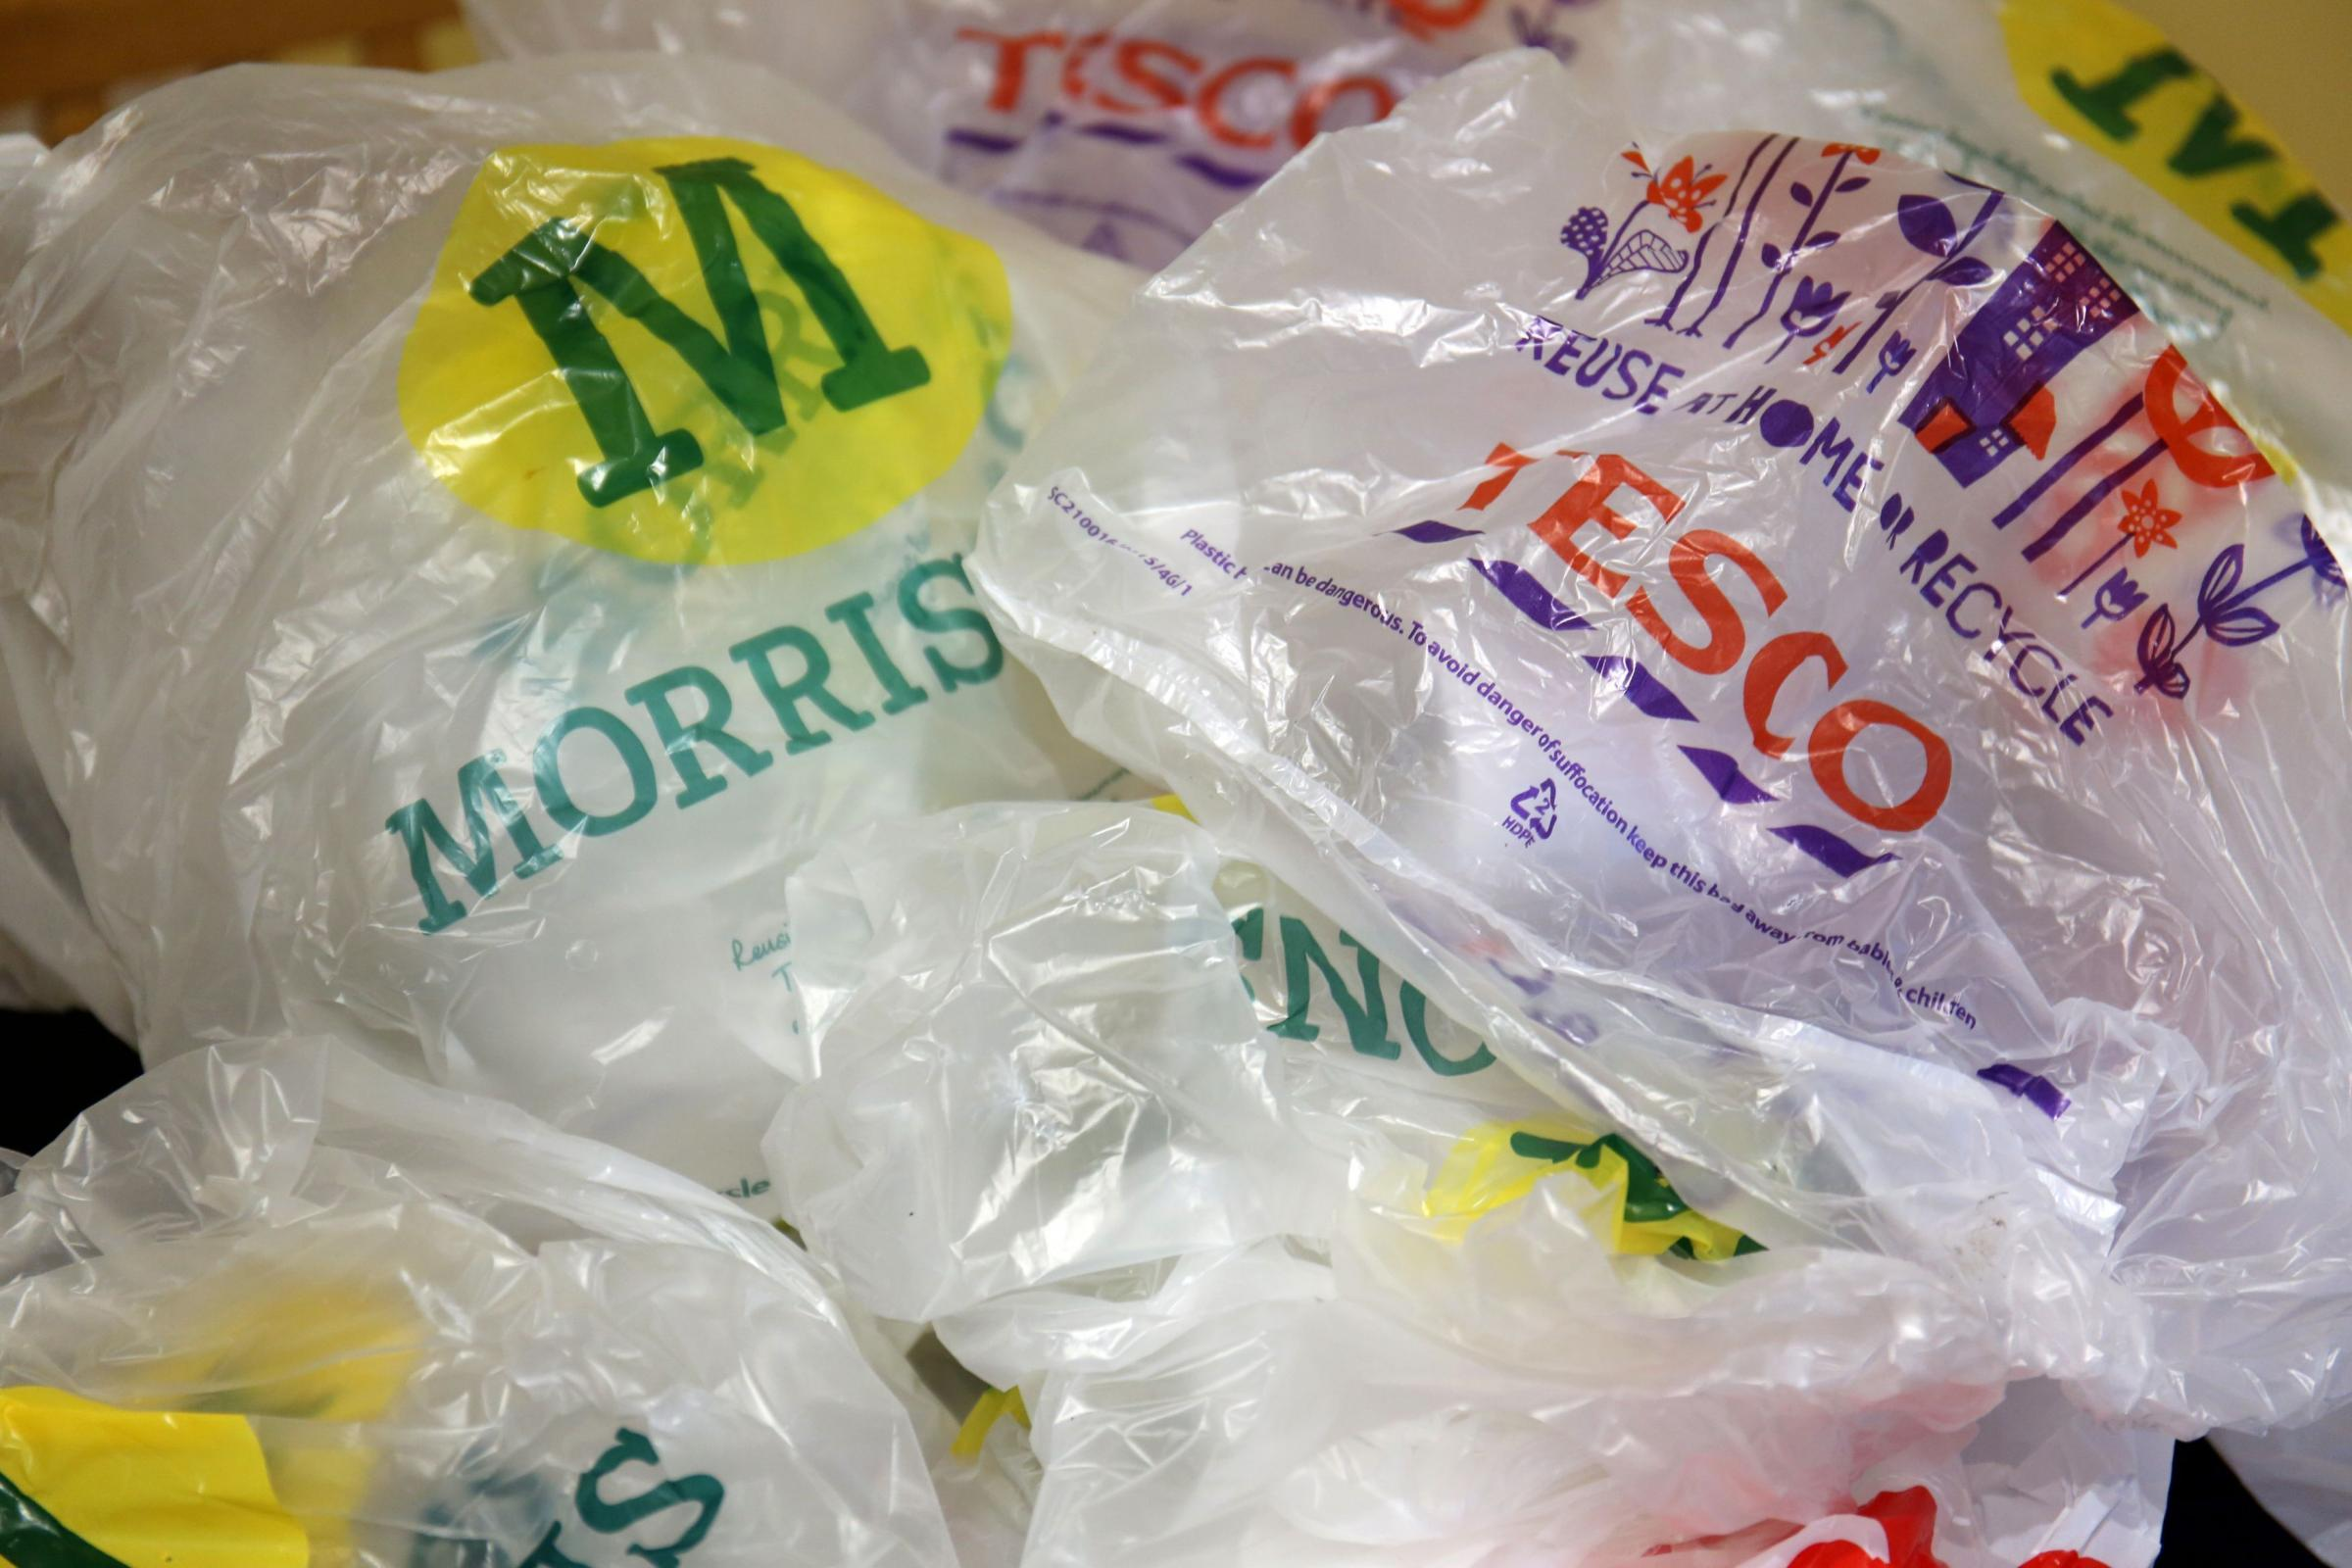 Obvious, but it still needs saying - people are not plastic bags Picture: CHRIS RADBURN/PA